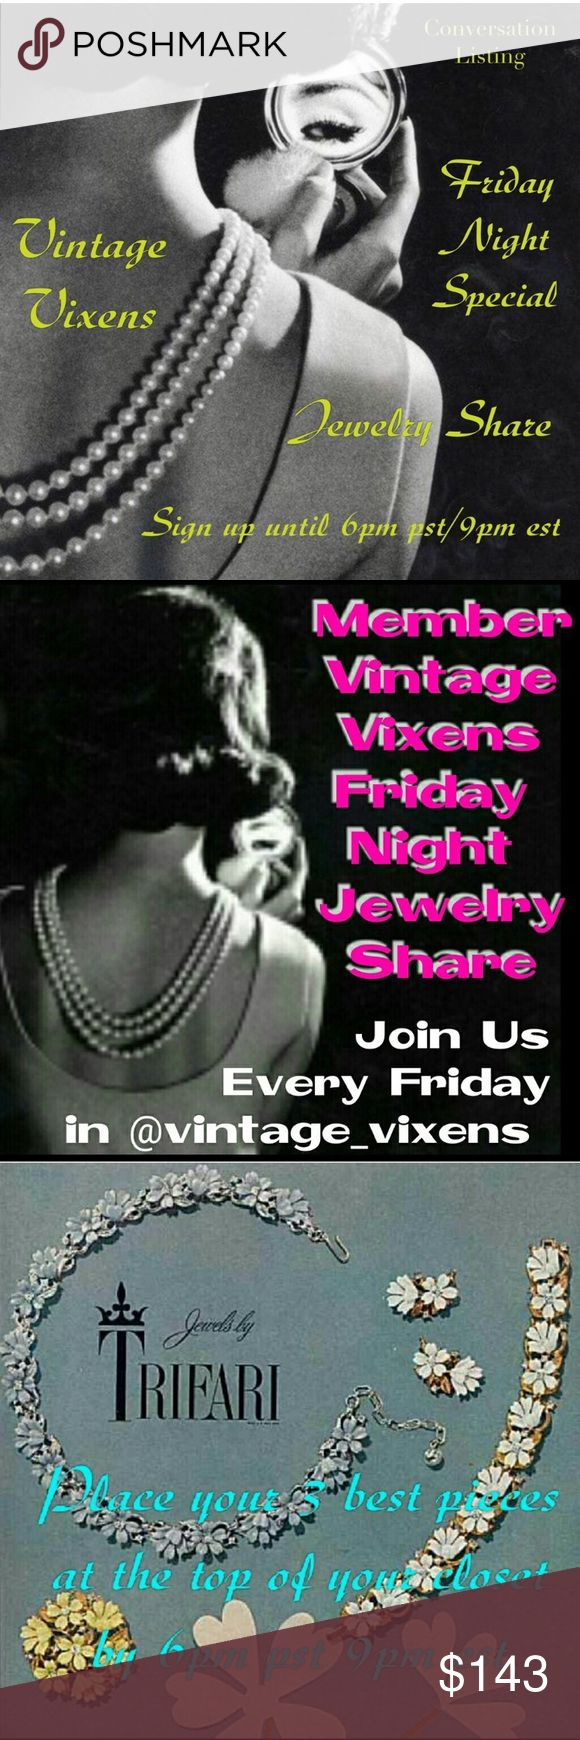 12/29 Fri Jewlery Share Vixens. Welcome to Friday Night Special Jewelry share.  Please self tag below to sign up. Please be sure to like the conversation page next to this one for price drops to be reminded to sign up. Please keep all comments on the comment listing. Sign in closes at 6 Pacific/9 Eastern and you have until 3am your time to complete 3 vintage jewelry shares for each closet signed up. So let's have some fun this Friday & share your vintage jewels! Hosted by Margot…